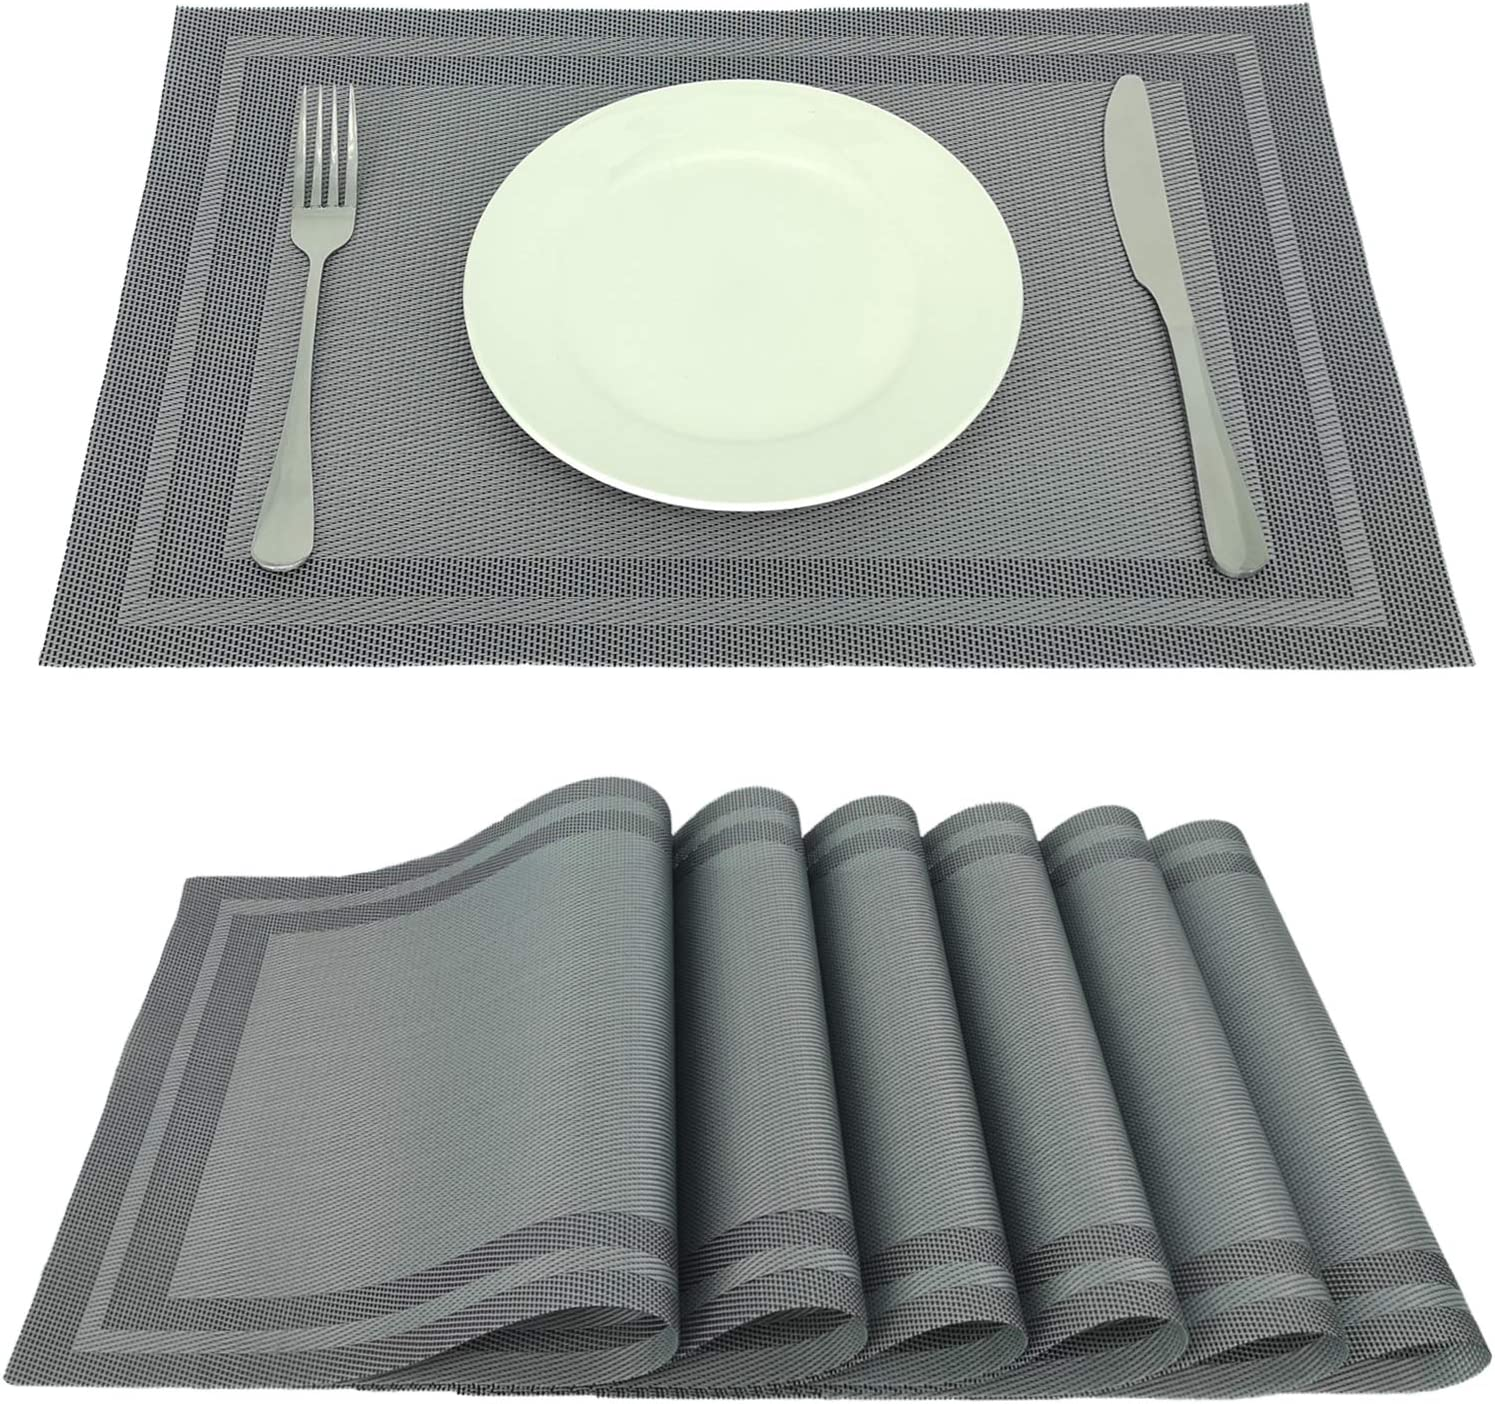 Onlyer Placemats for Dining Table Set of 6, 18 x12 Inches Heat-Resistant Table Mats, Stain Resistant Anti-Skid Washable PVC Table Placemats, Woven Vinyl Kitchen Place Mats (Sliver Gray)